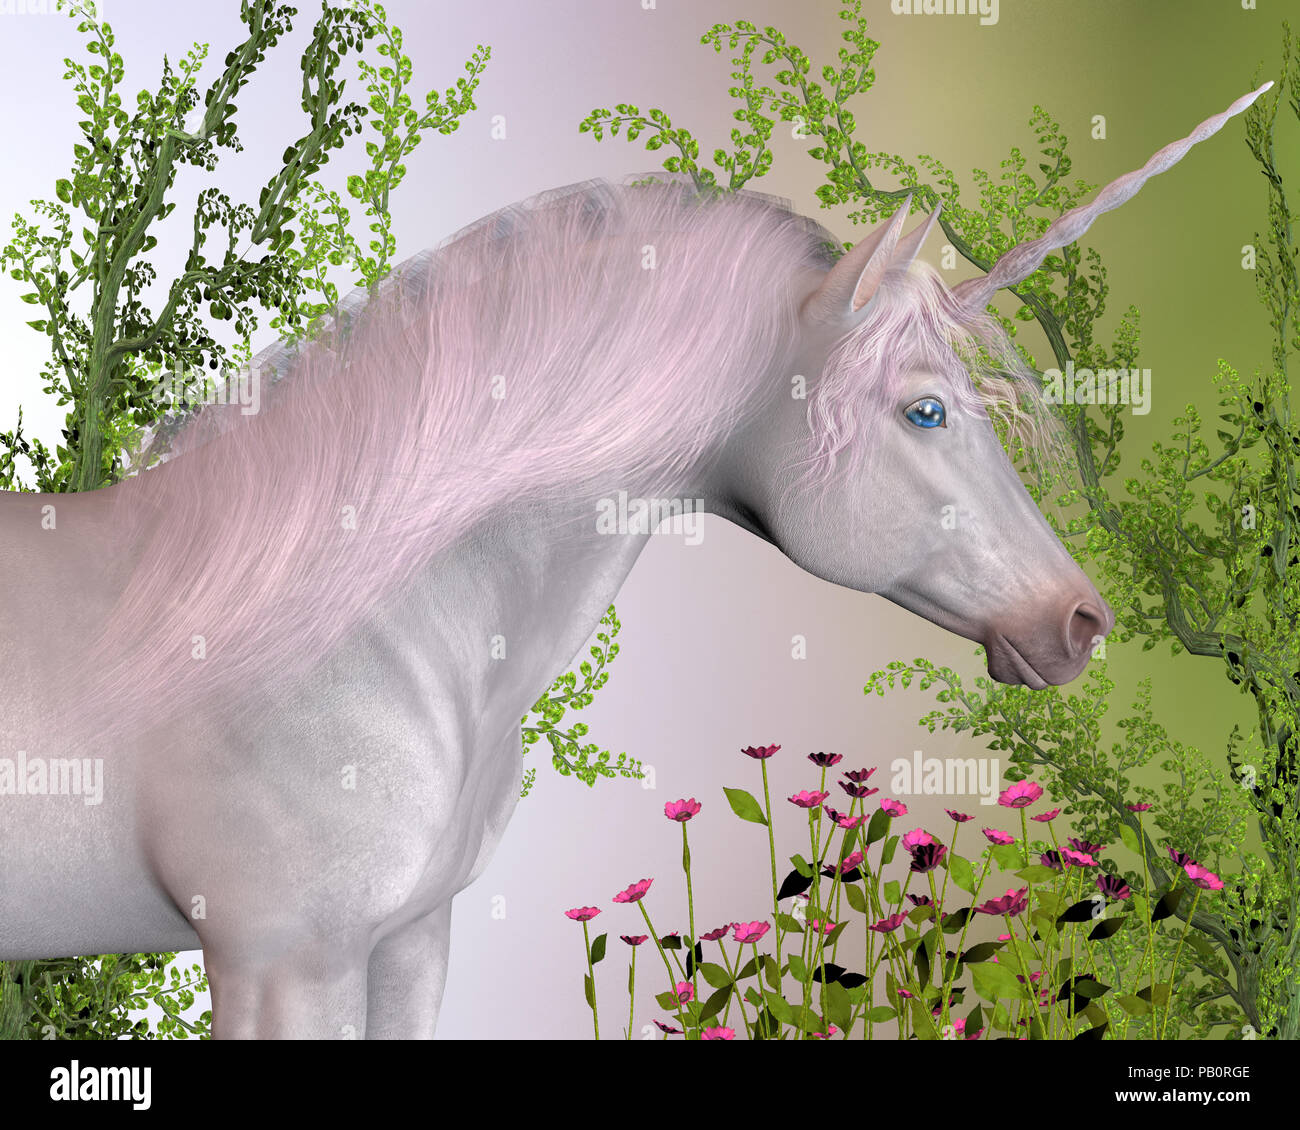 Enchanted Unicorn - A white enchanted unicorn mare with pink mane stands by pink flowers and green ivy vines. - Stock Image